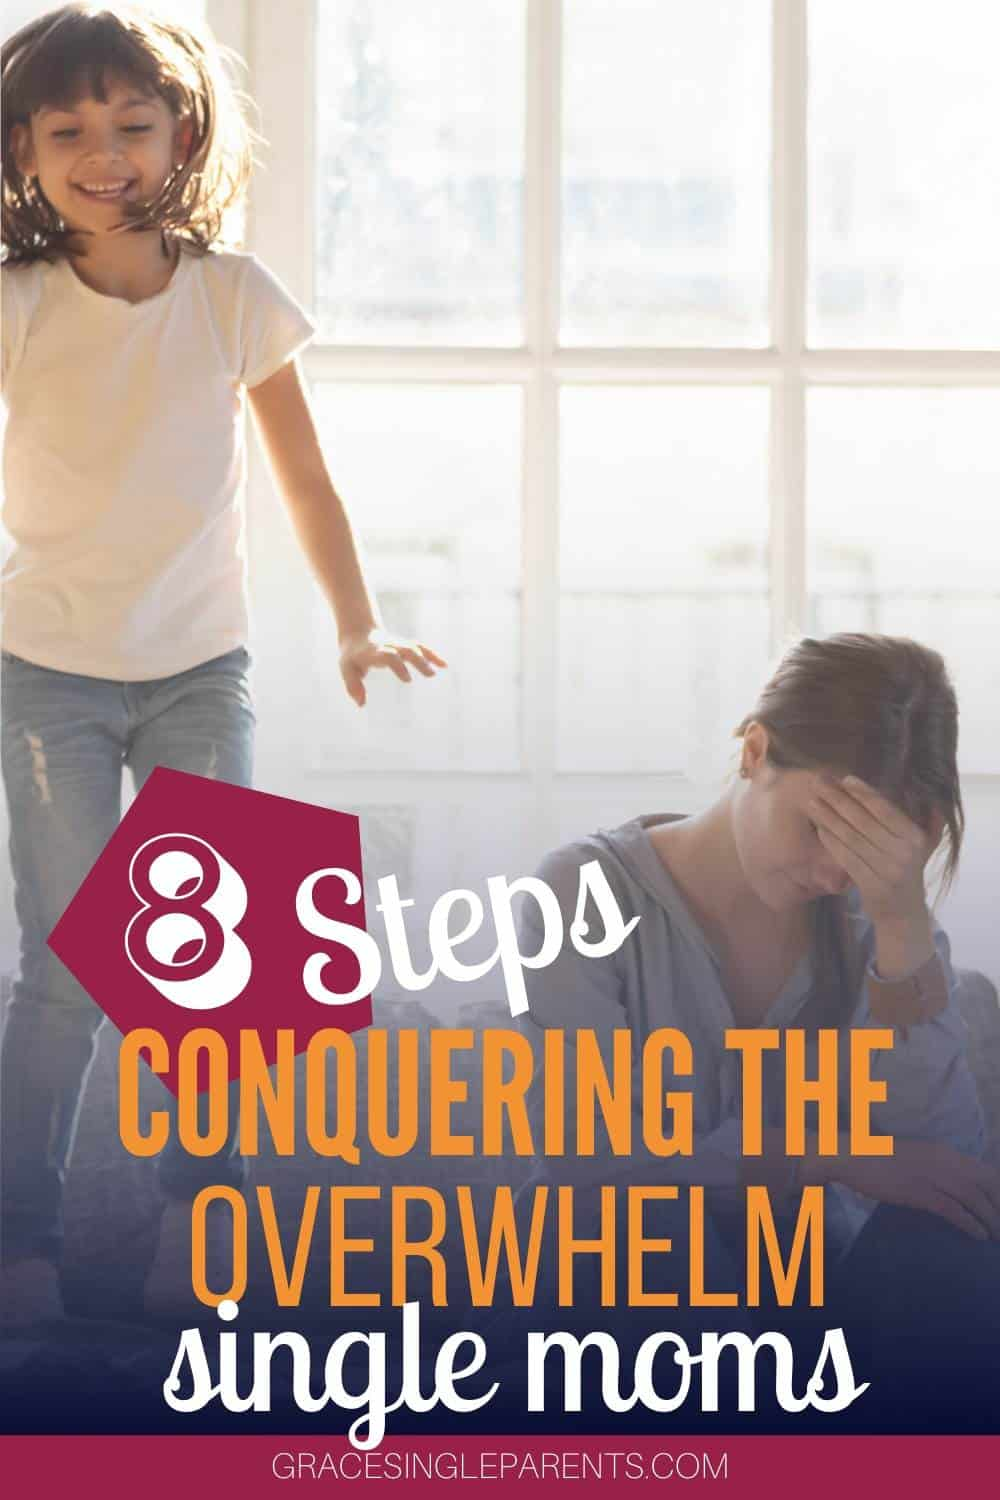 8 Steps for Single Moms to Conquer the Overwhelm